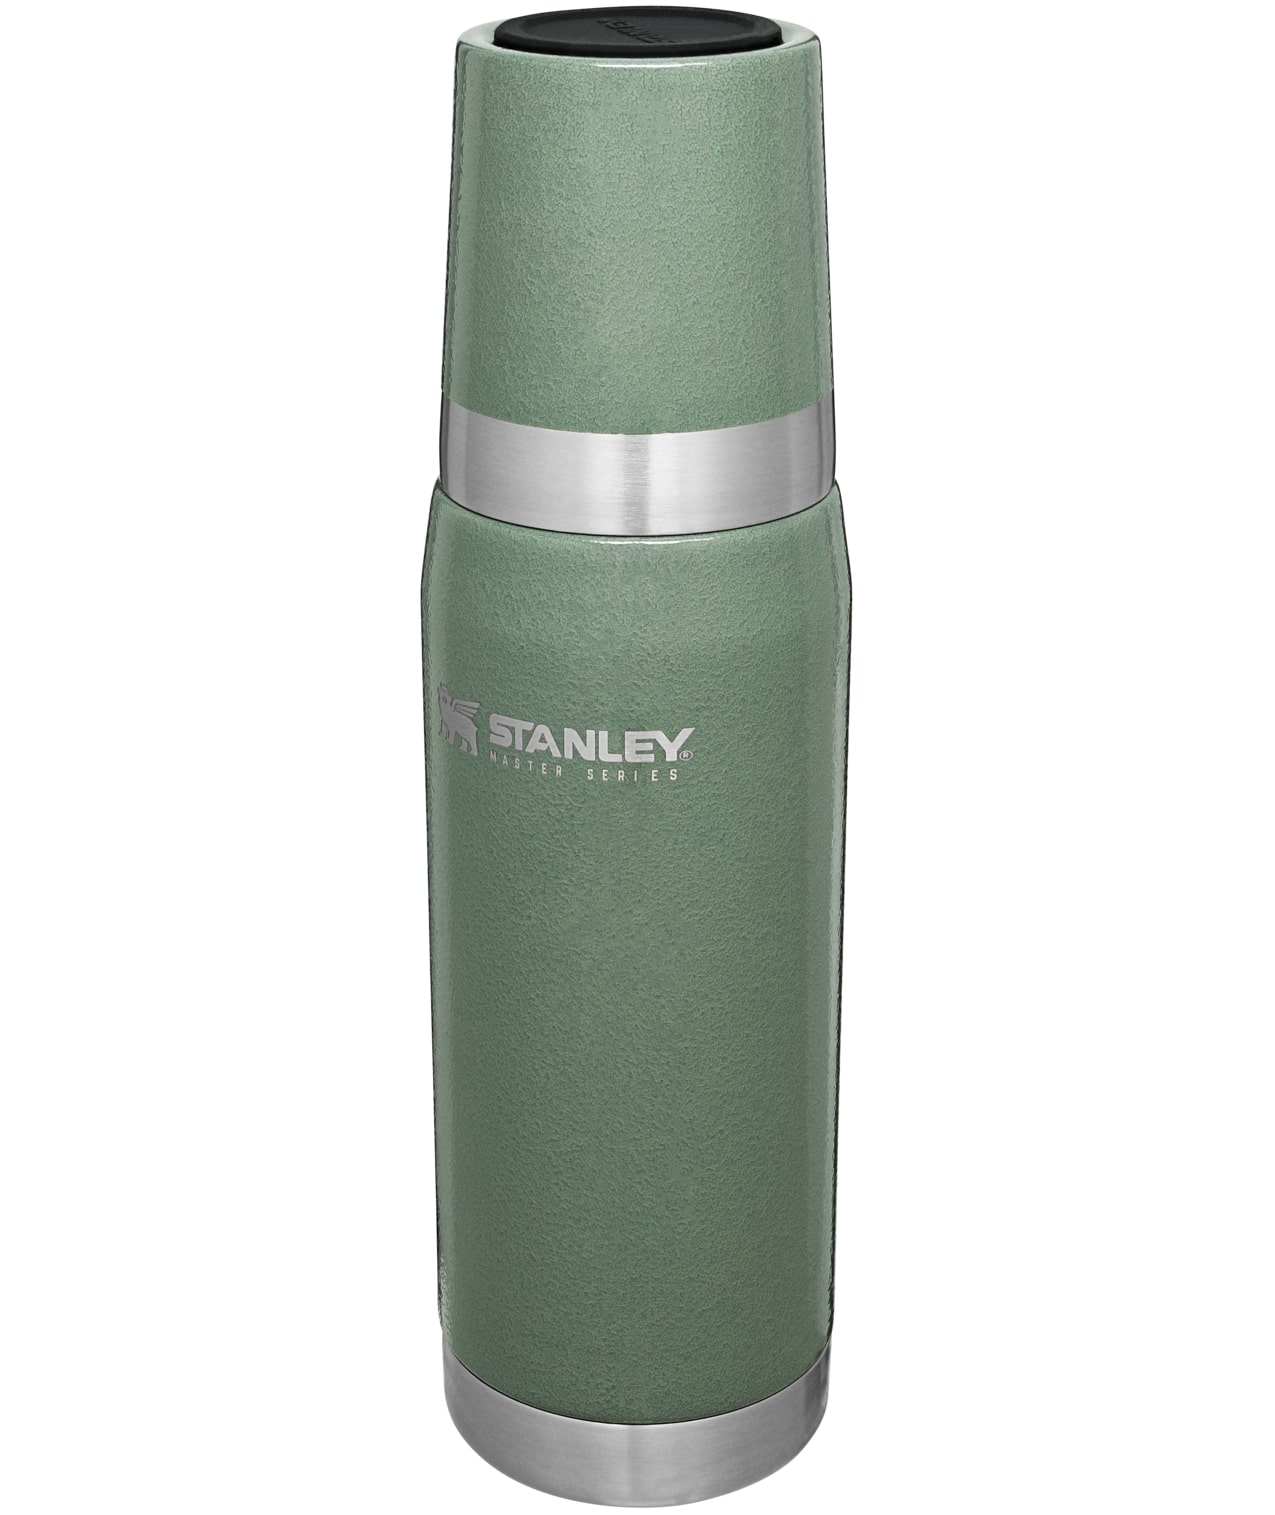 Bình giữ nhiệt Stanley Master Unbreakable Thermal Bottle 25oz   0.75L